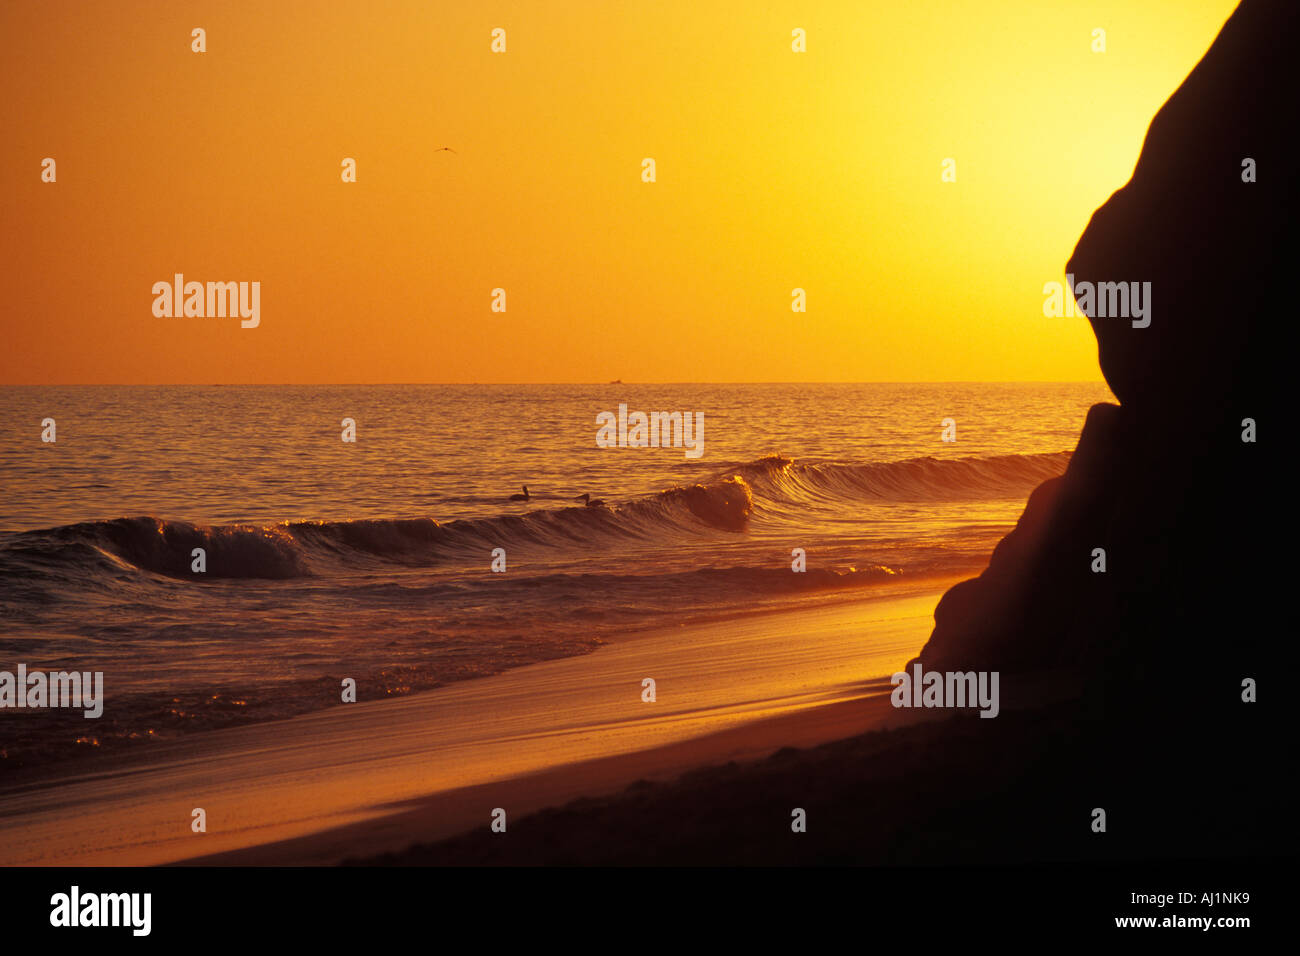 Mexico, Cabo San Lucas, Sunset, Solmar Beach Stock Photo